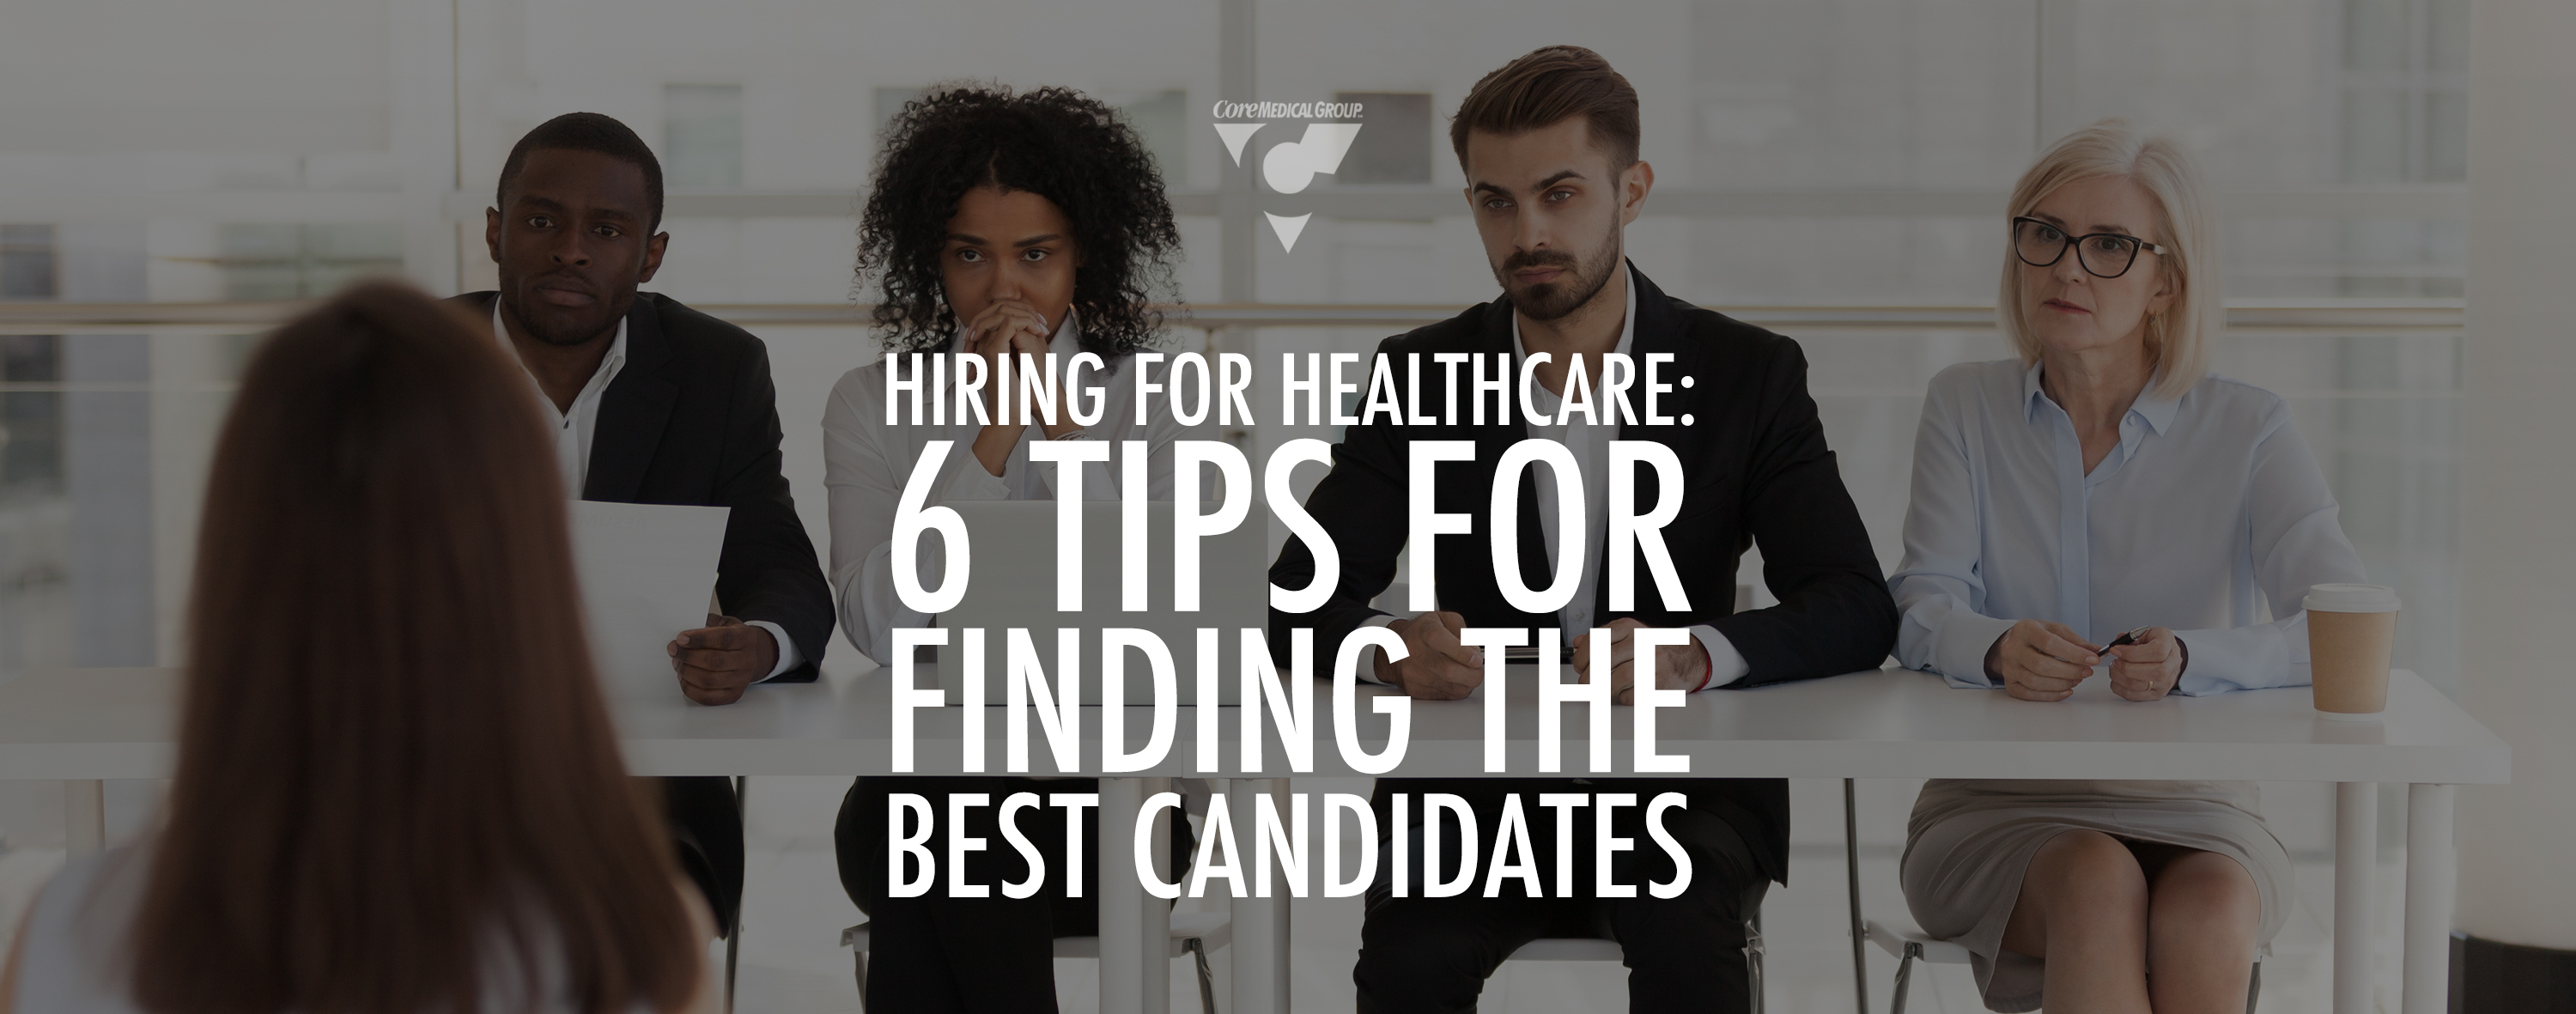 "Hiring for Healthcare"" 6 Tips for Finding the Best Candidates"